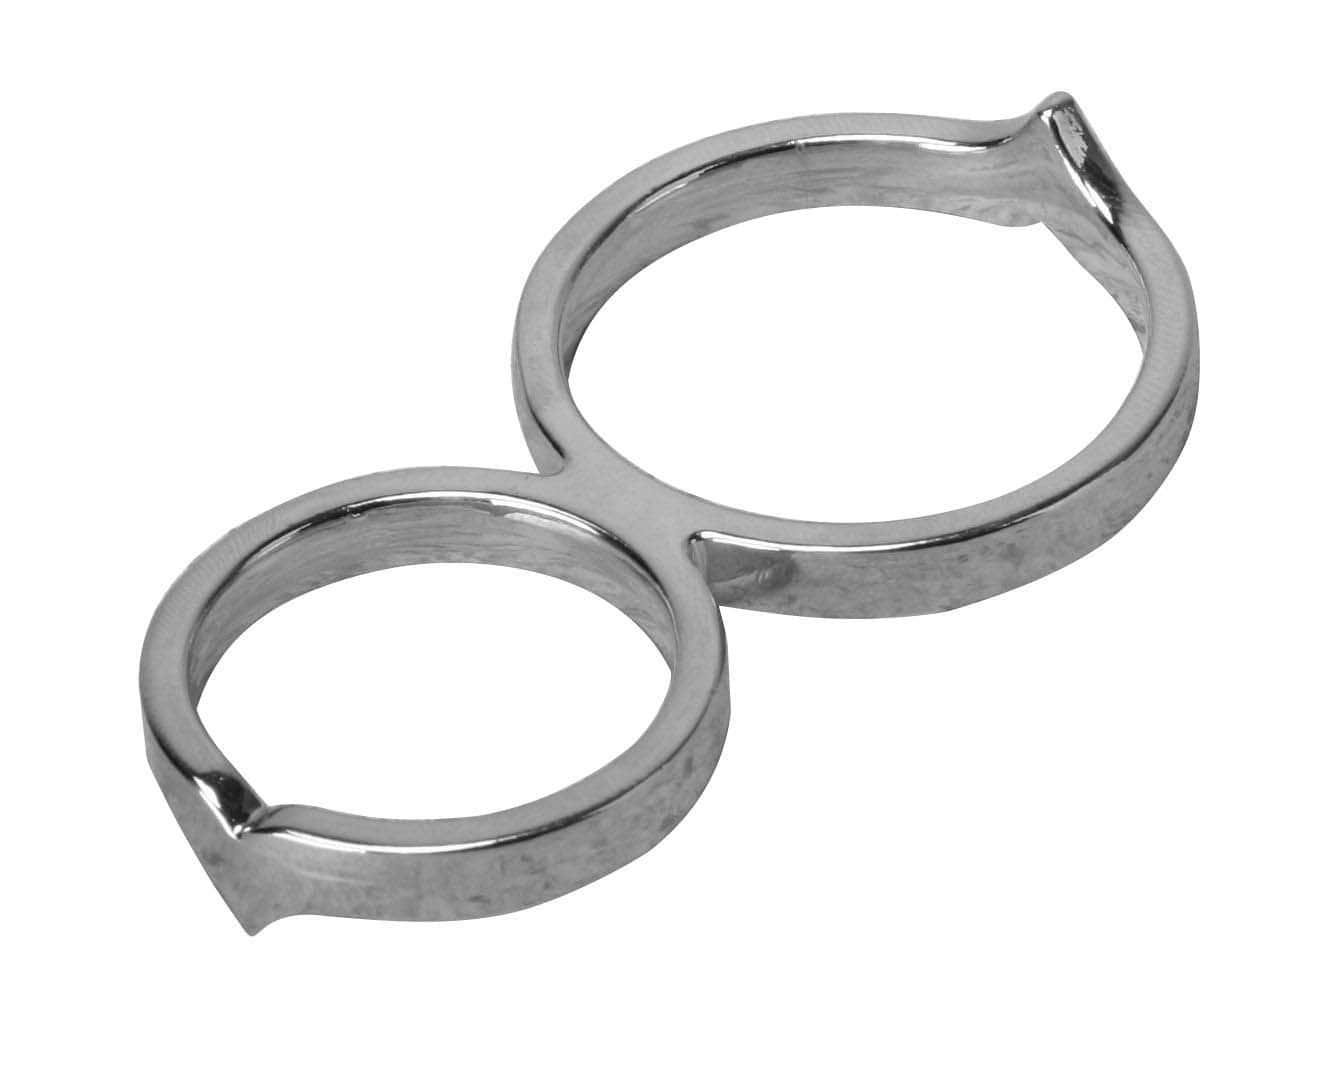 The Twisted Penis Chastity Cock Ring